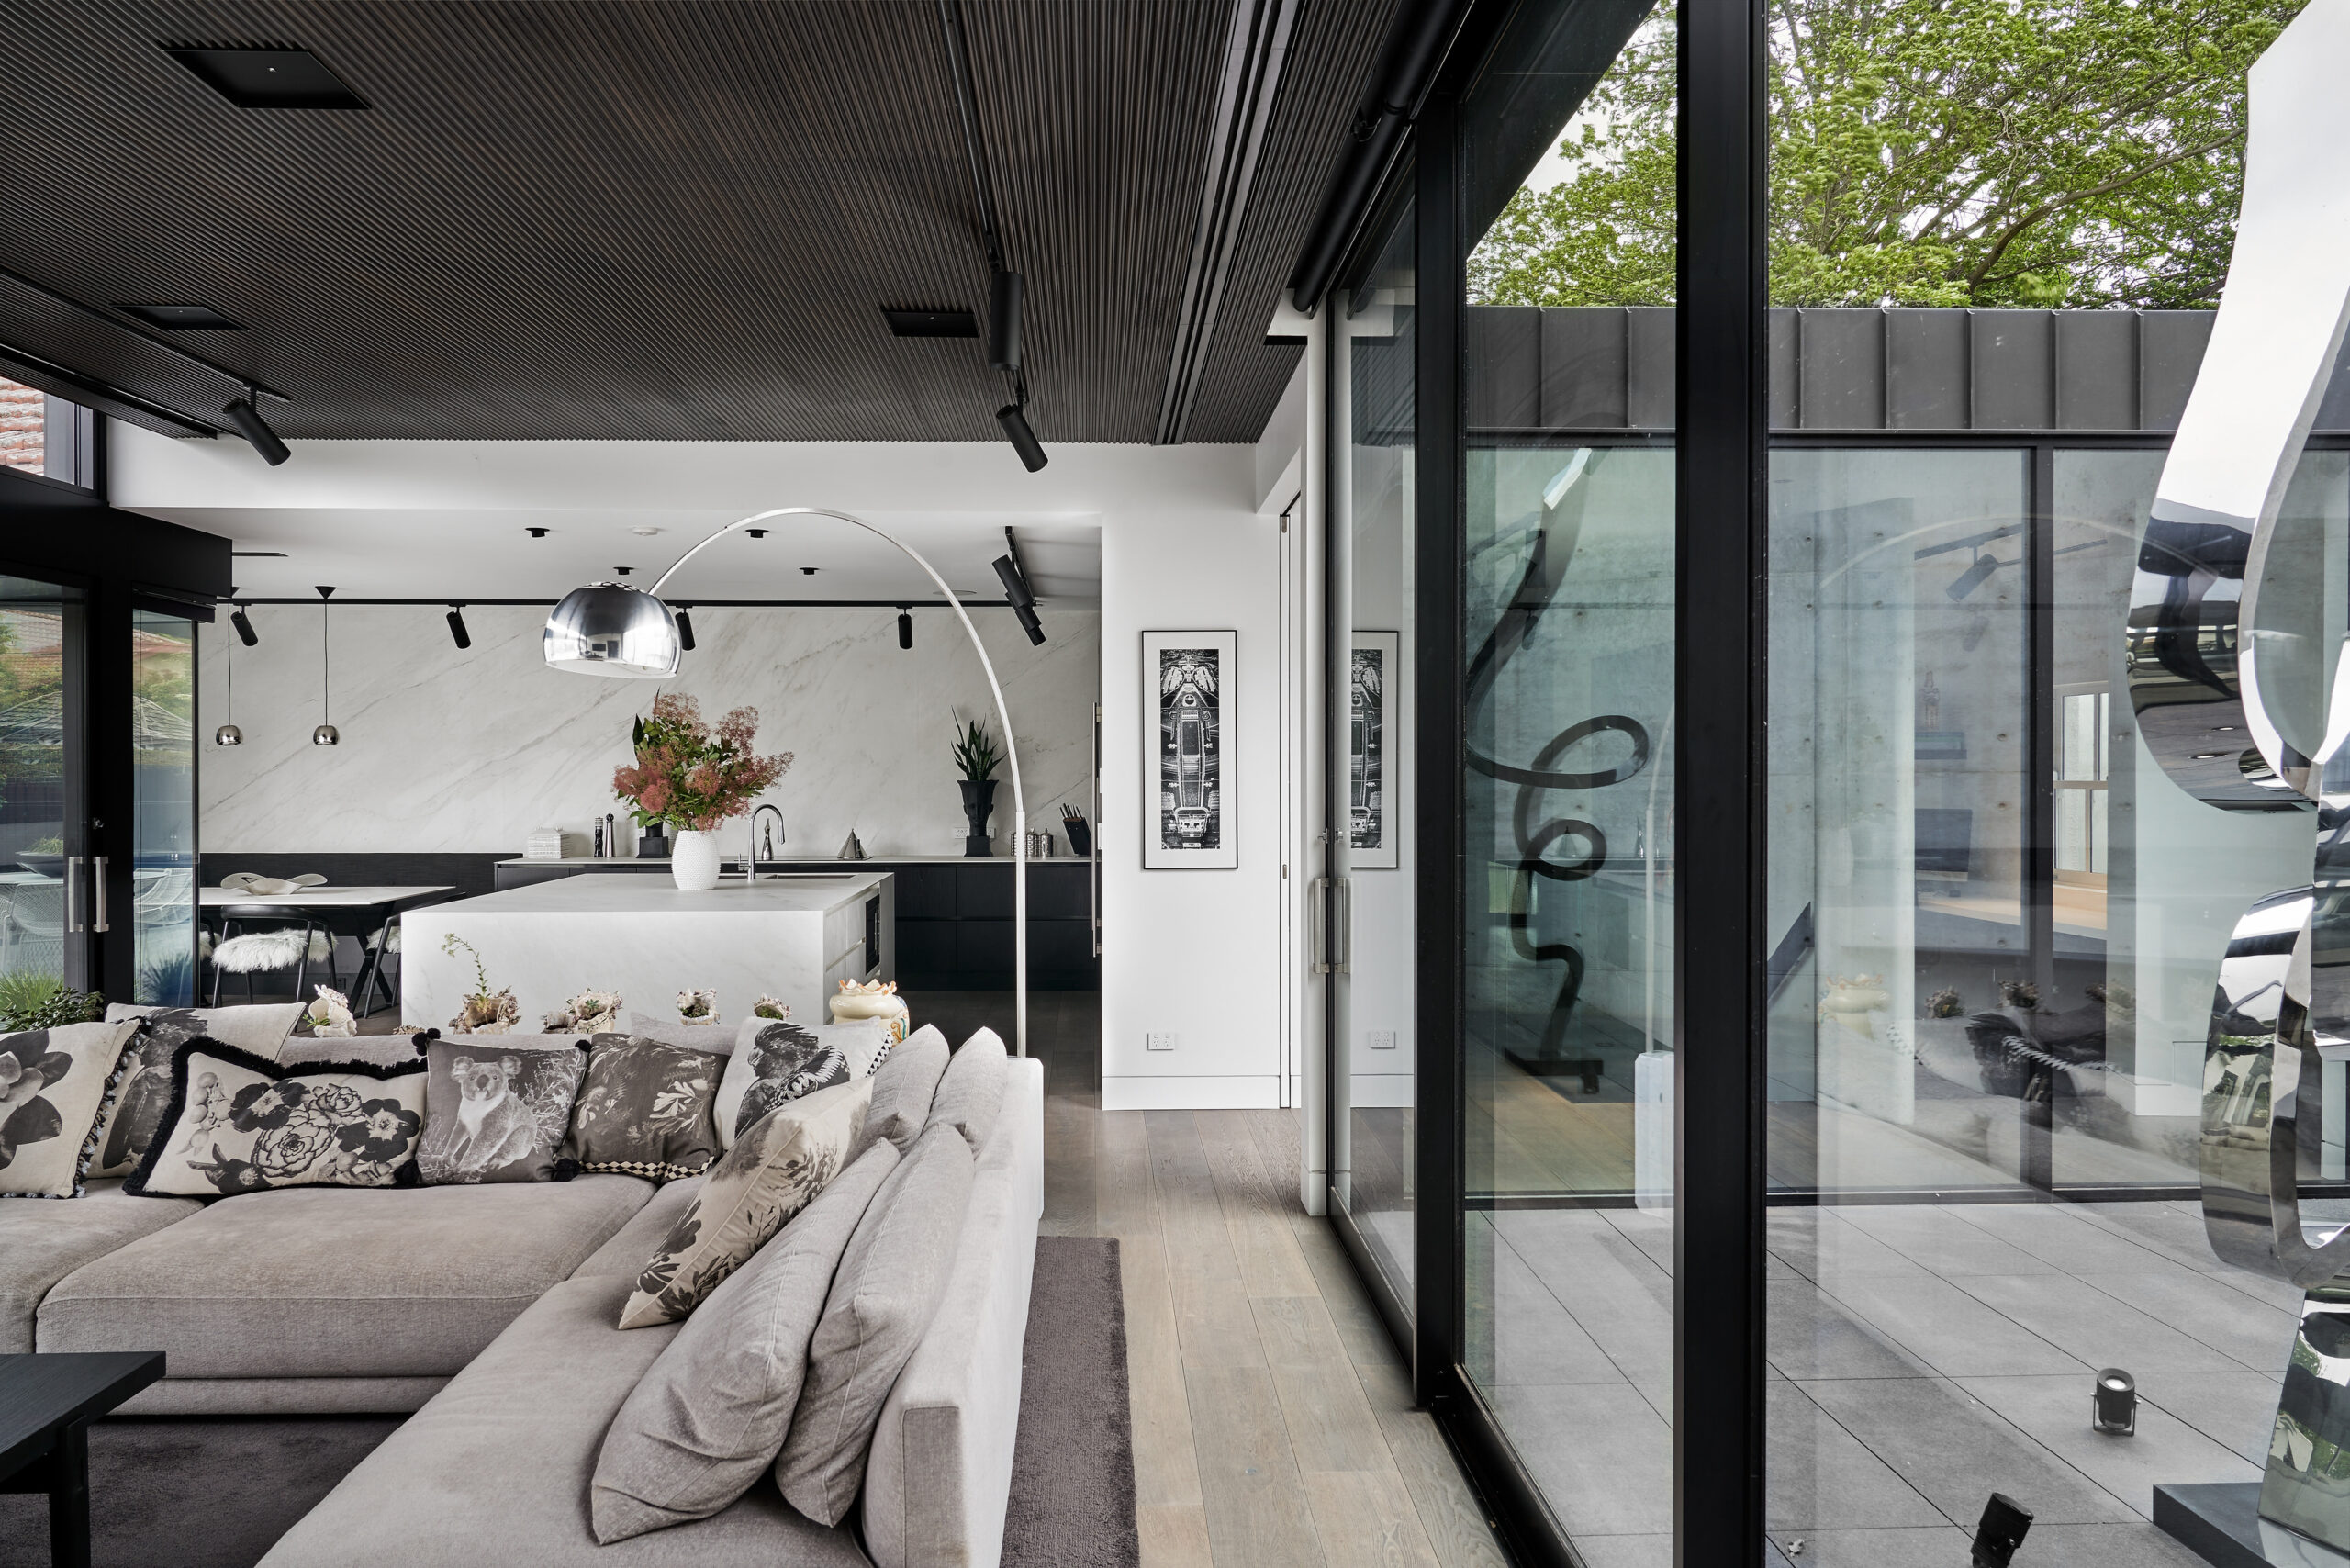 Open plan lounge area with huge glass sliding doors leading out to a private walled courtyard on one side and pool area on the other